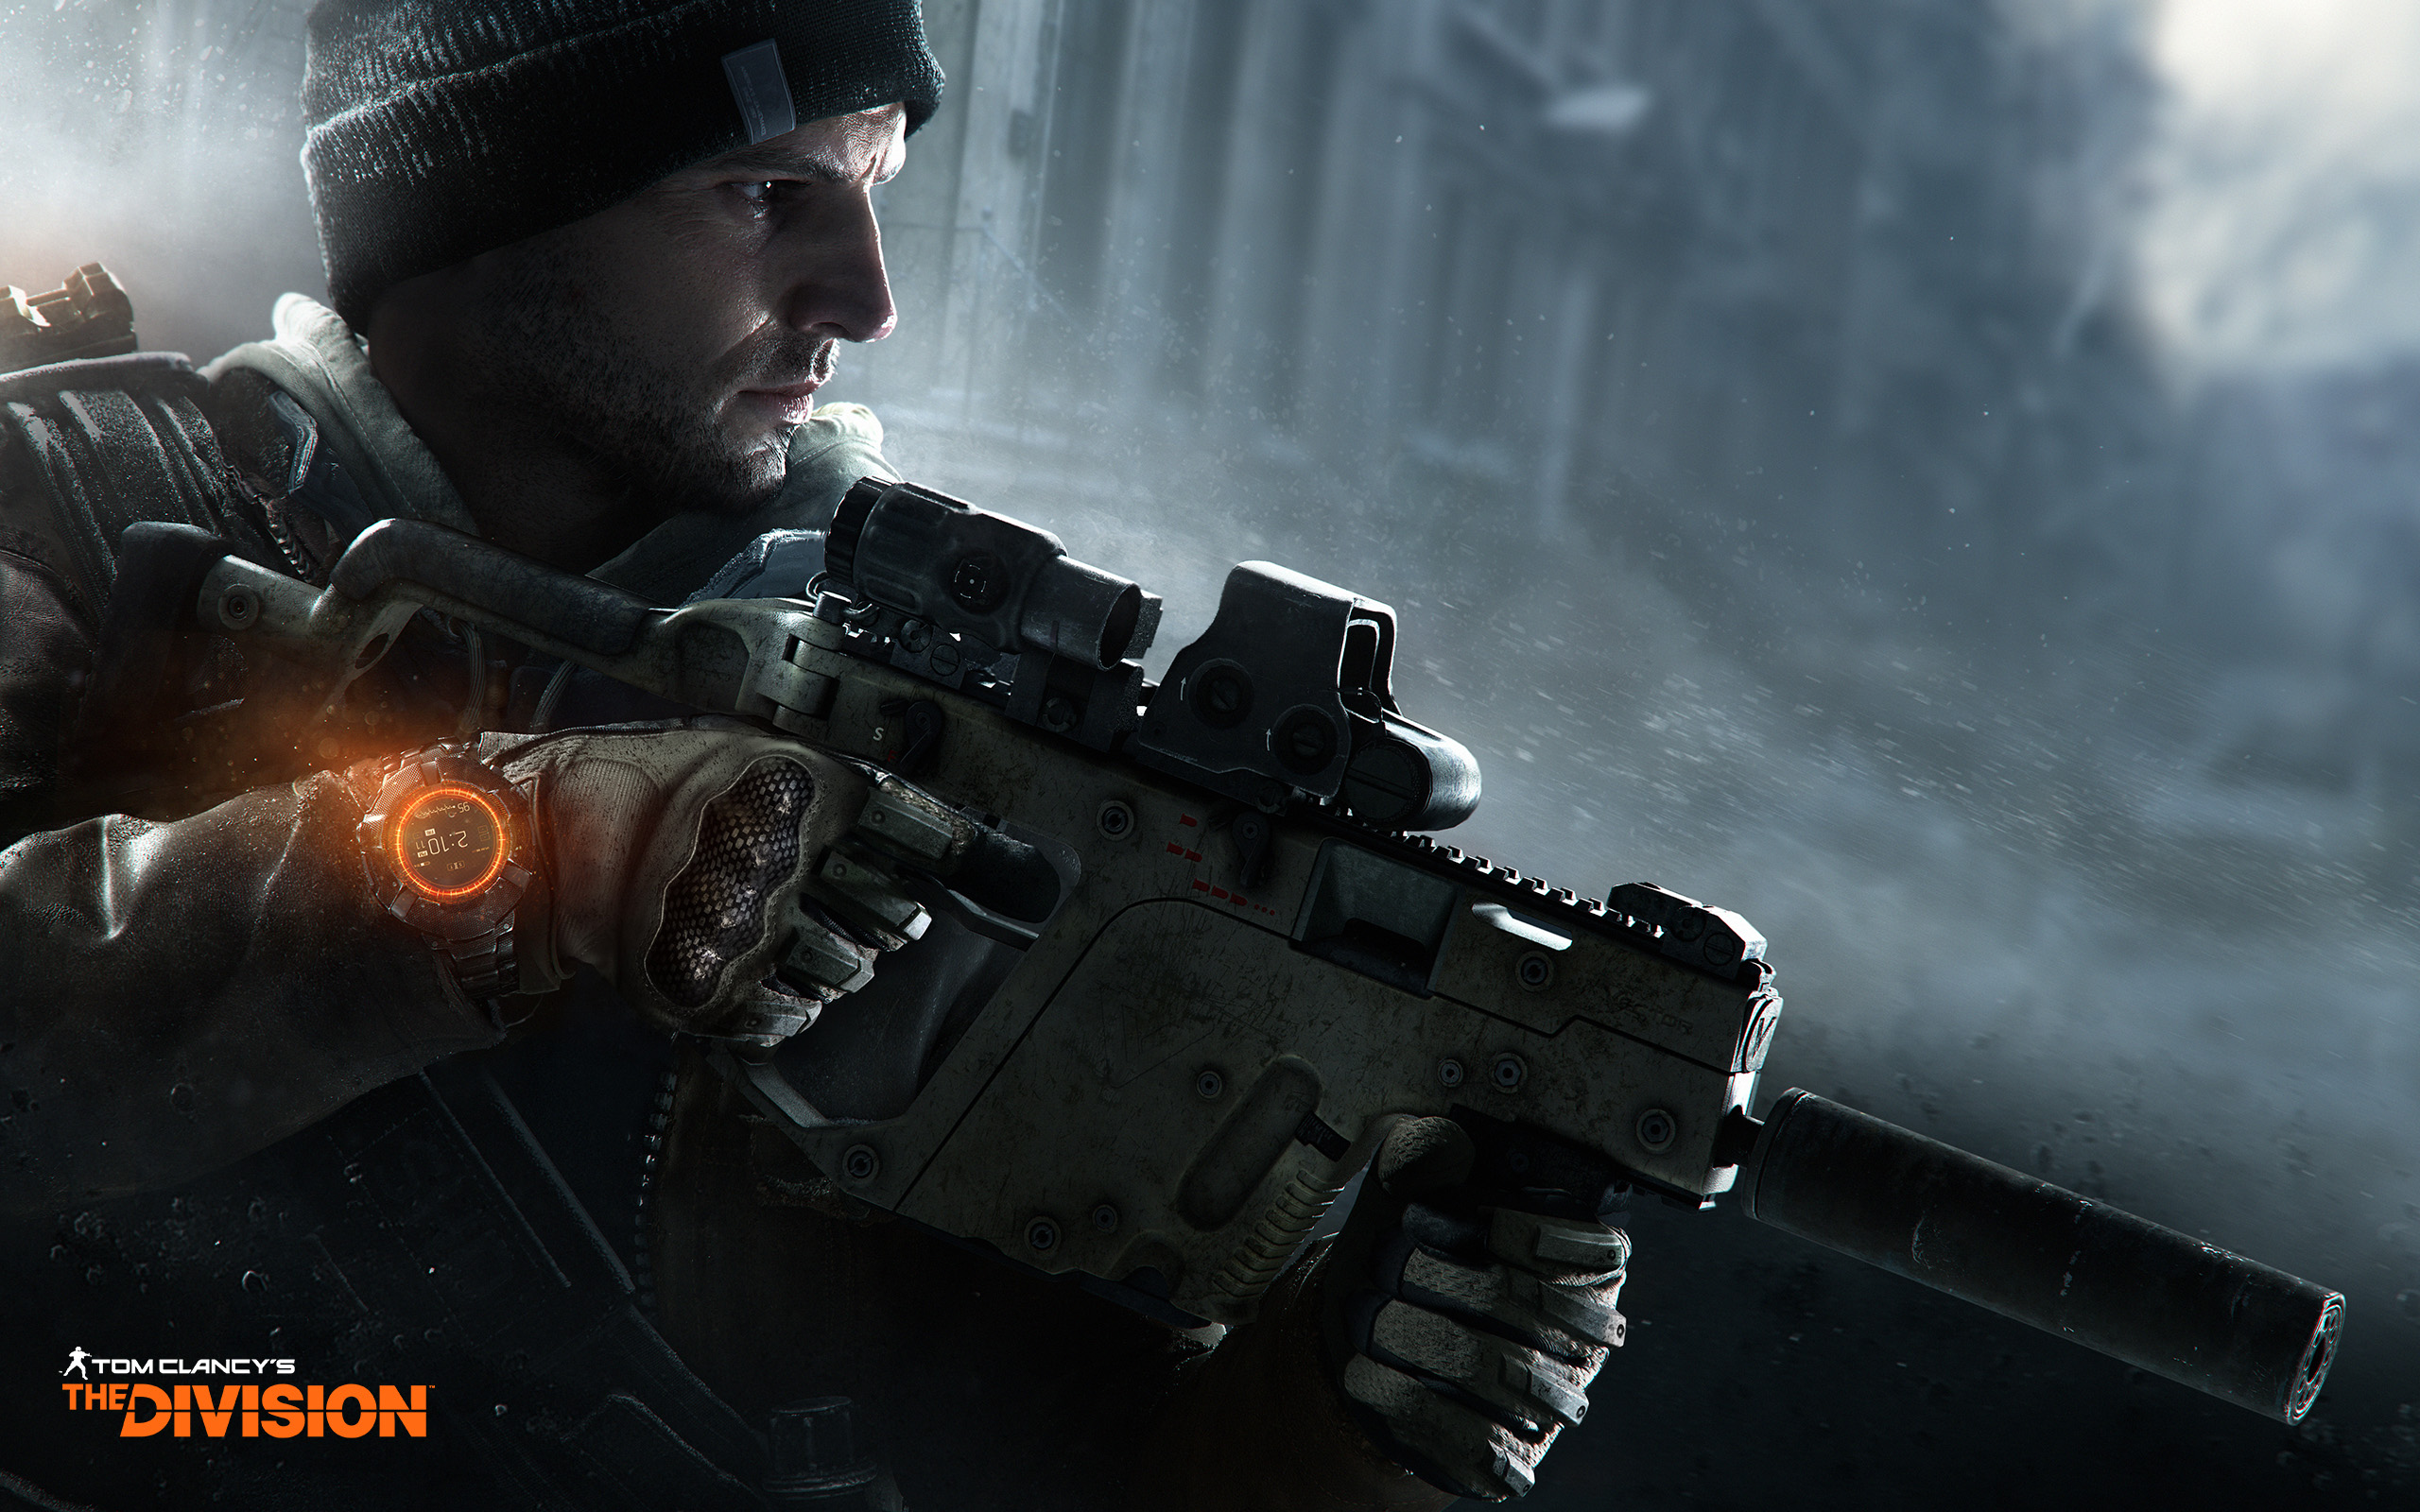 Division 4k Wallpapers For Your Desktop Or Mobile Screen Free And